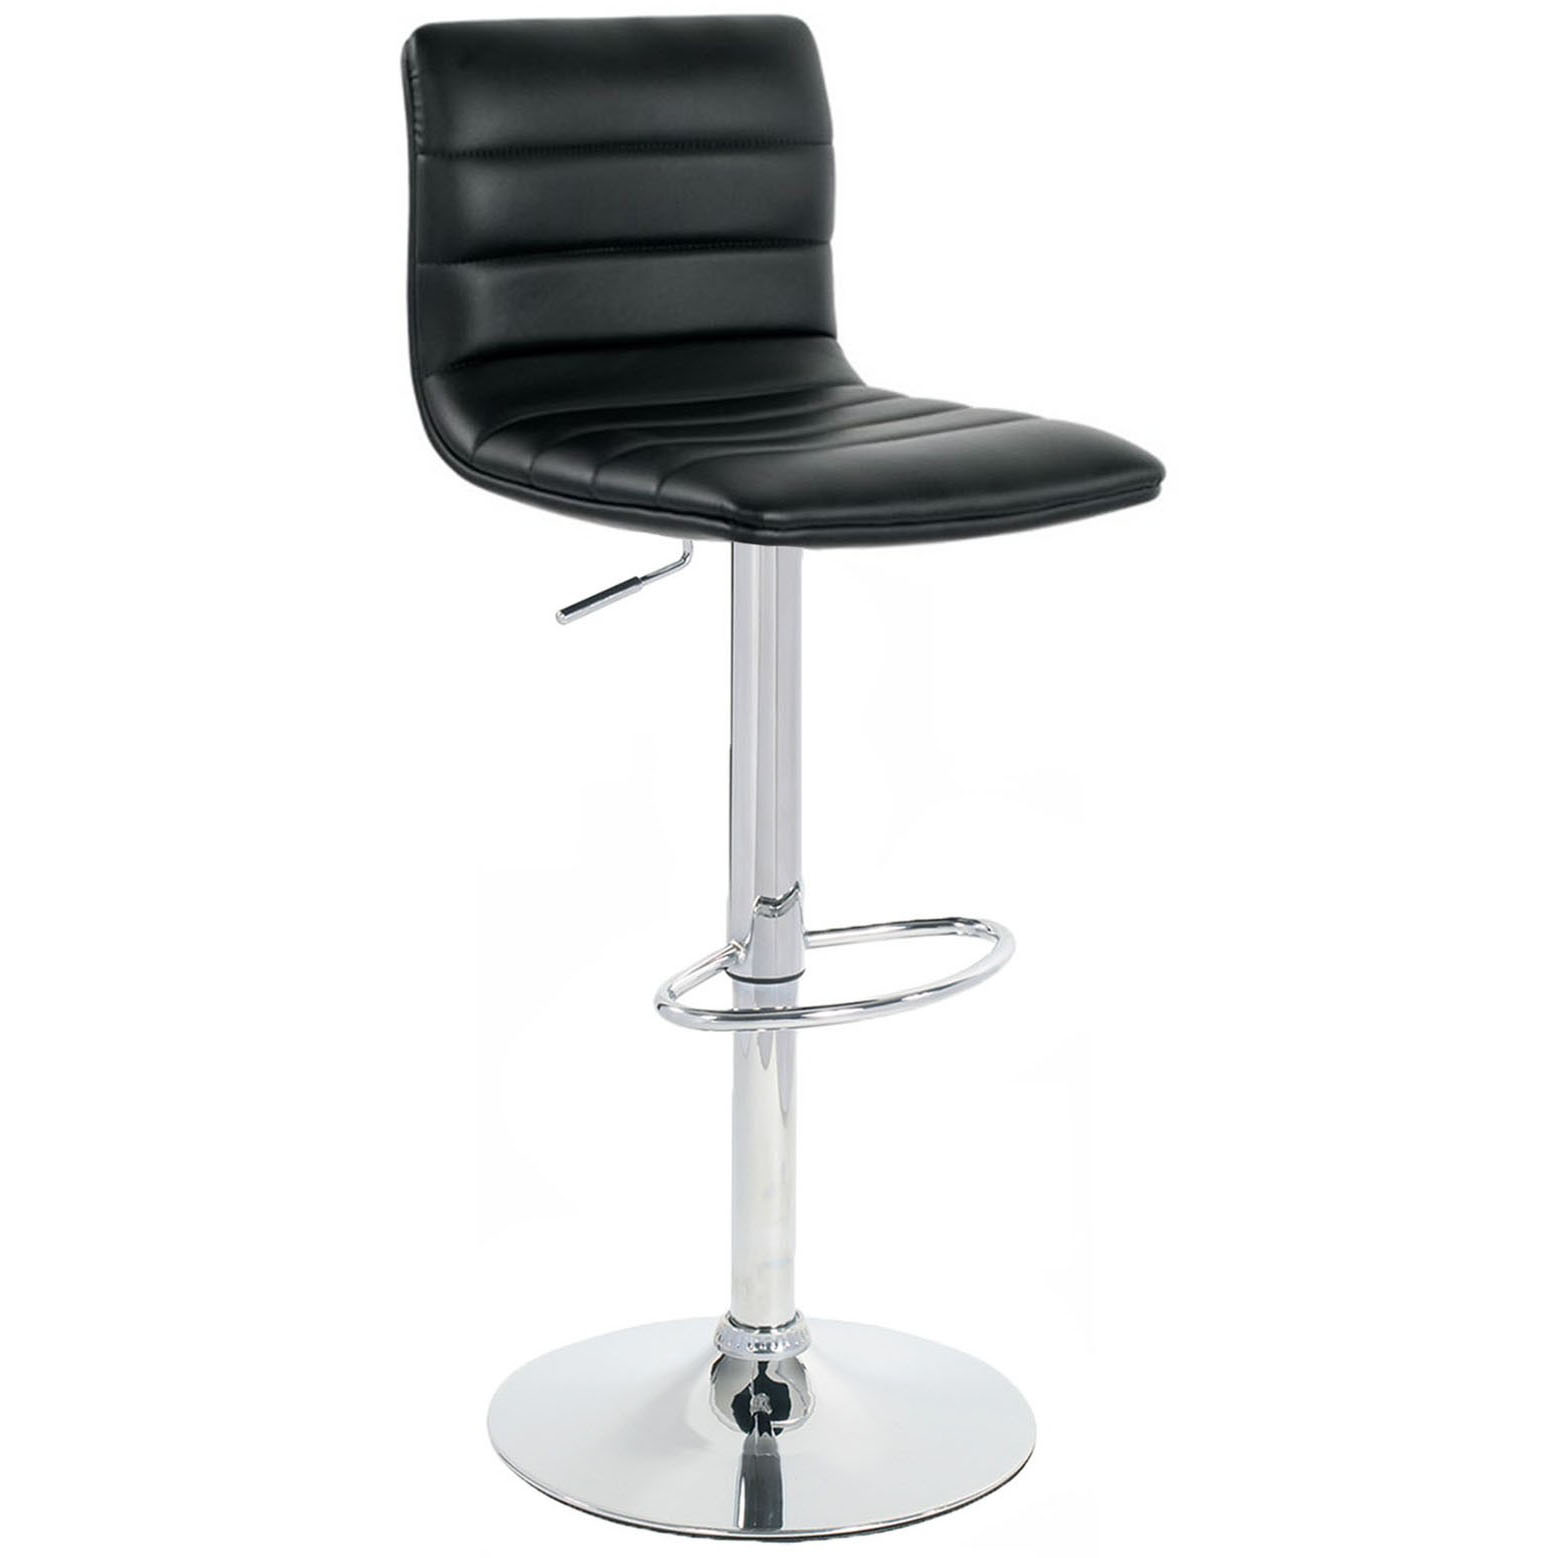 Aldo Bar Stool - Black